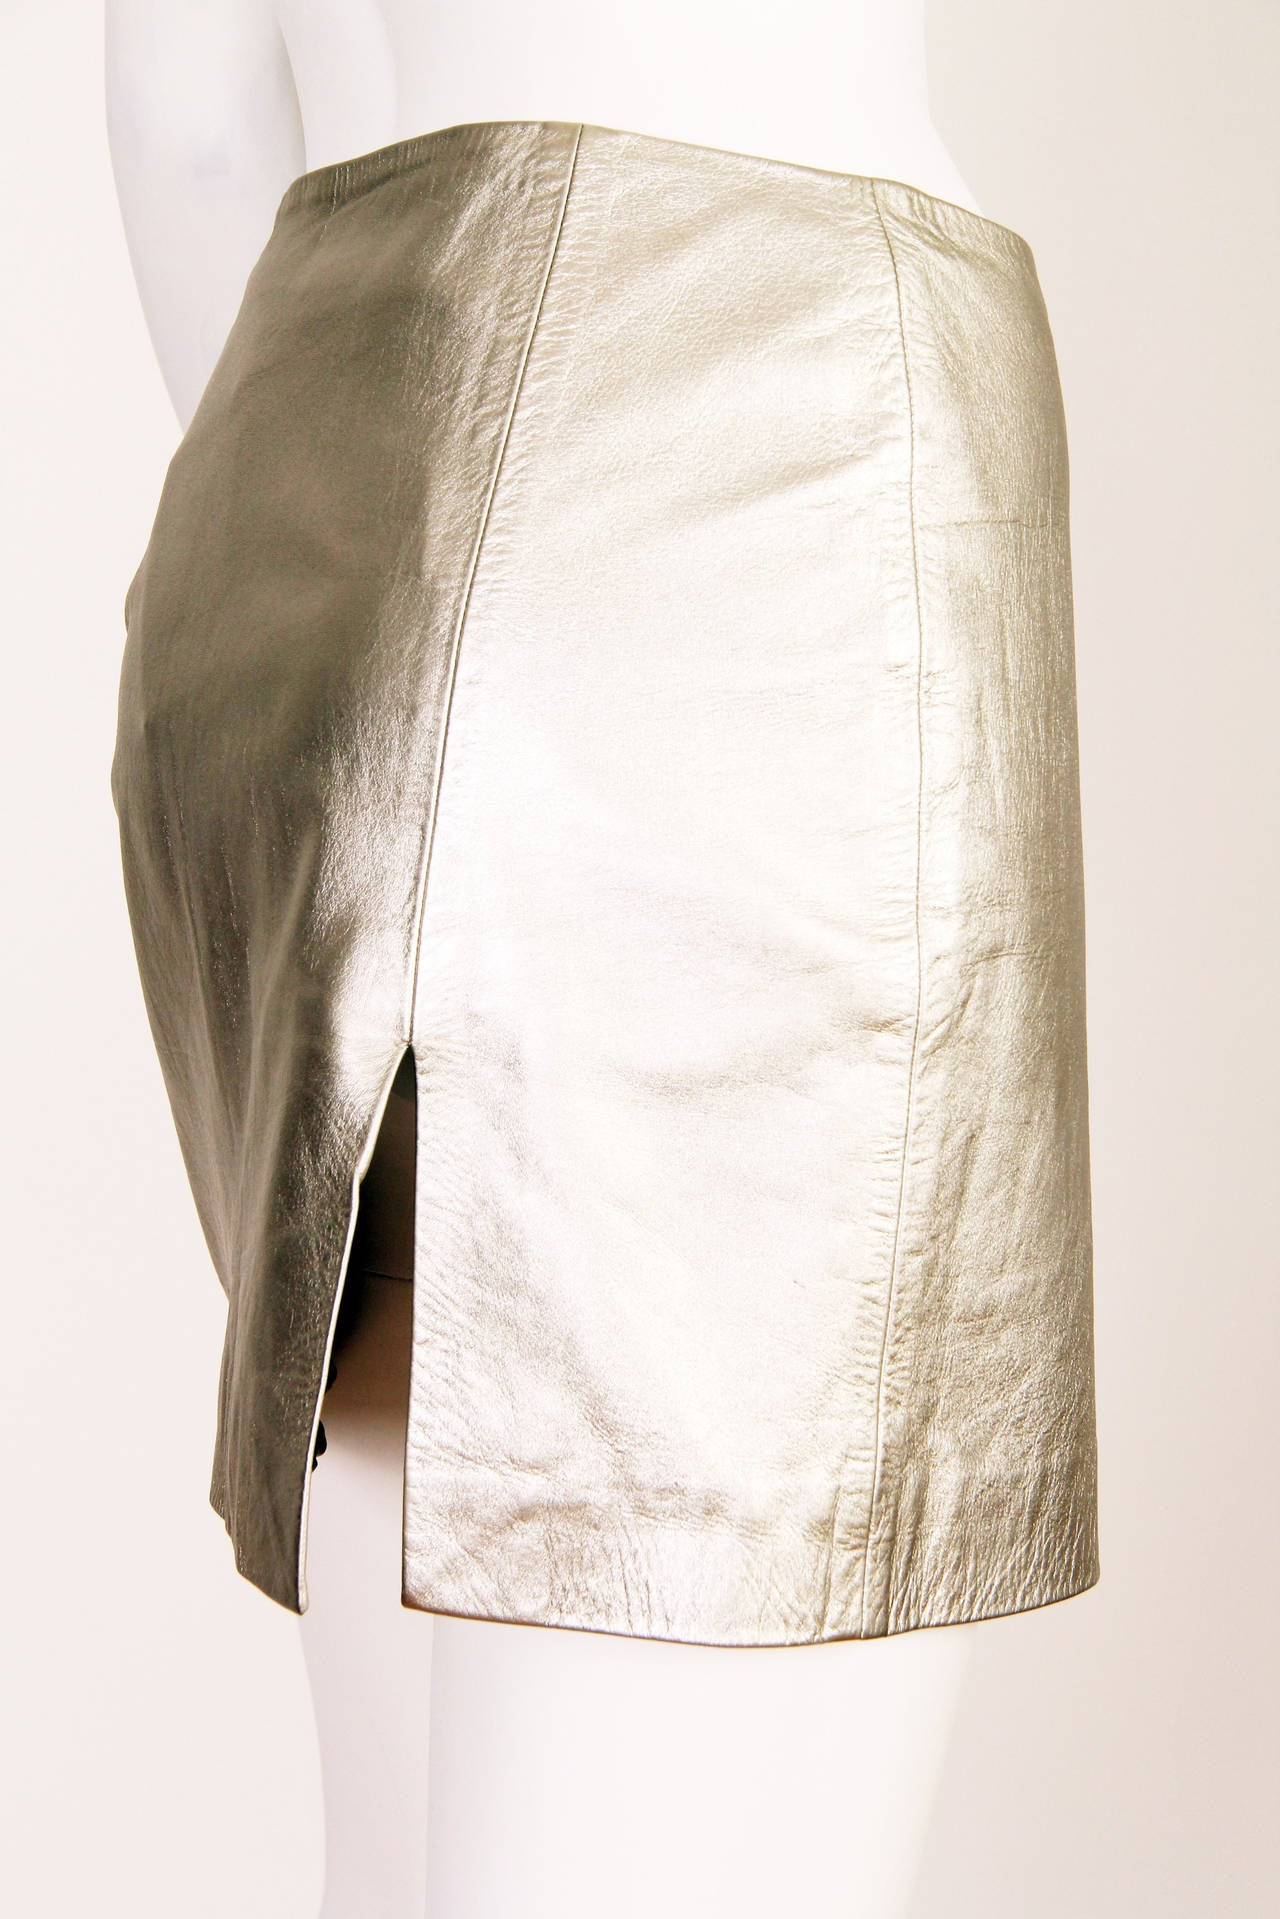 Women's Iconic Documented 1994 Supermodel Gianni Versace Couture Silver Leather Skirt For Sale